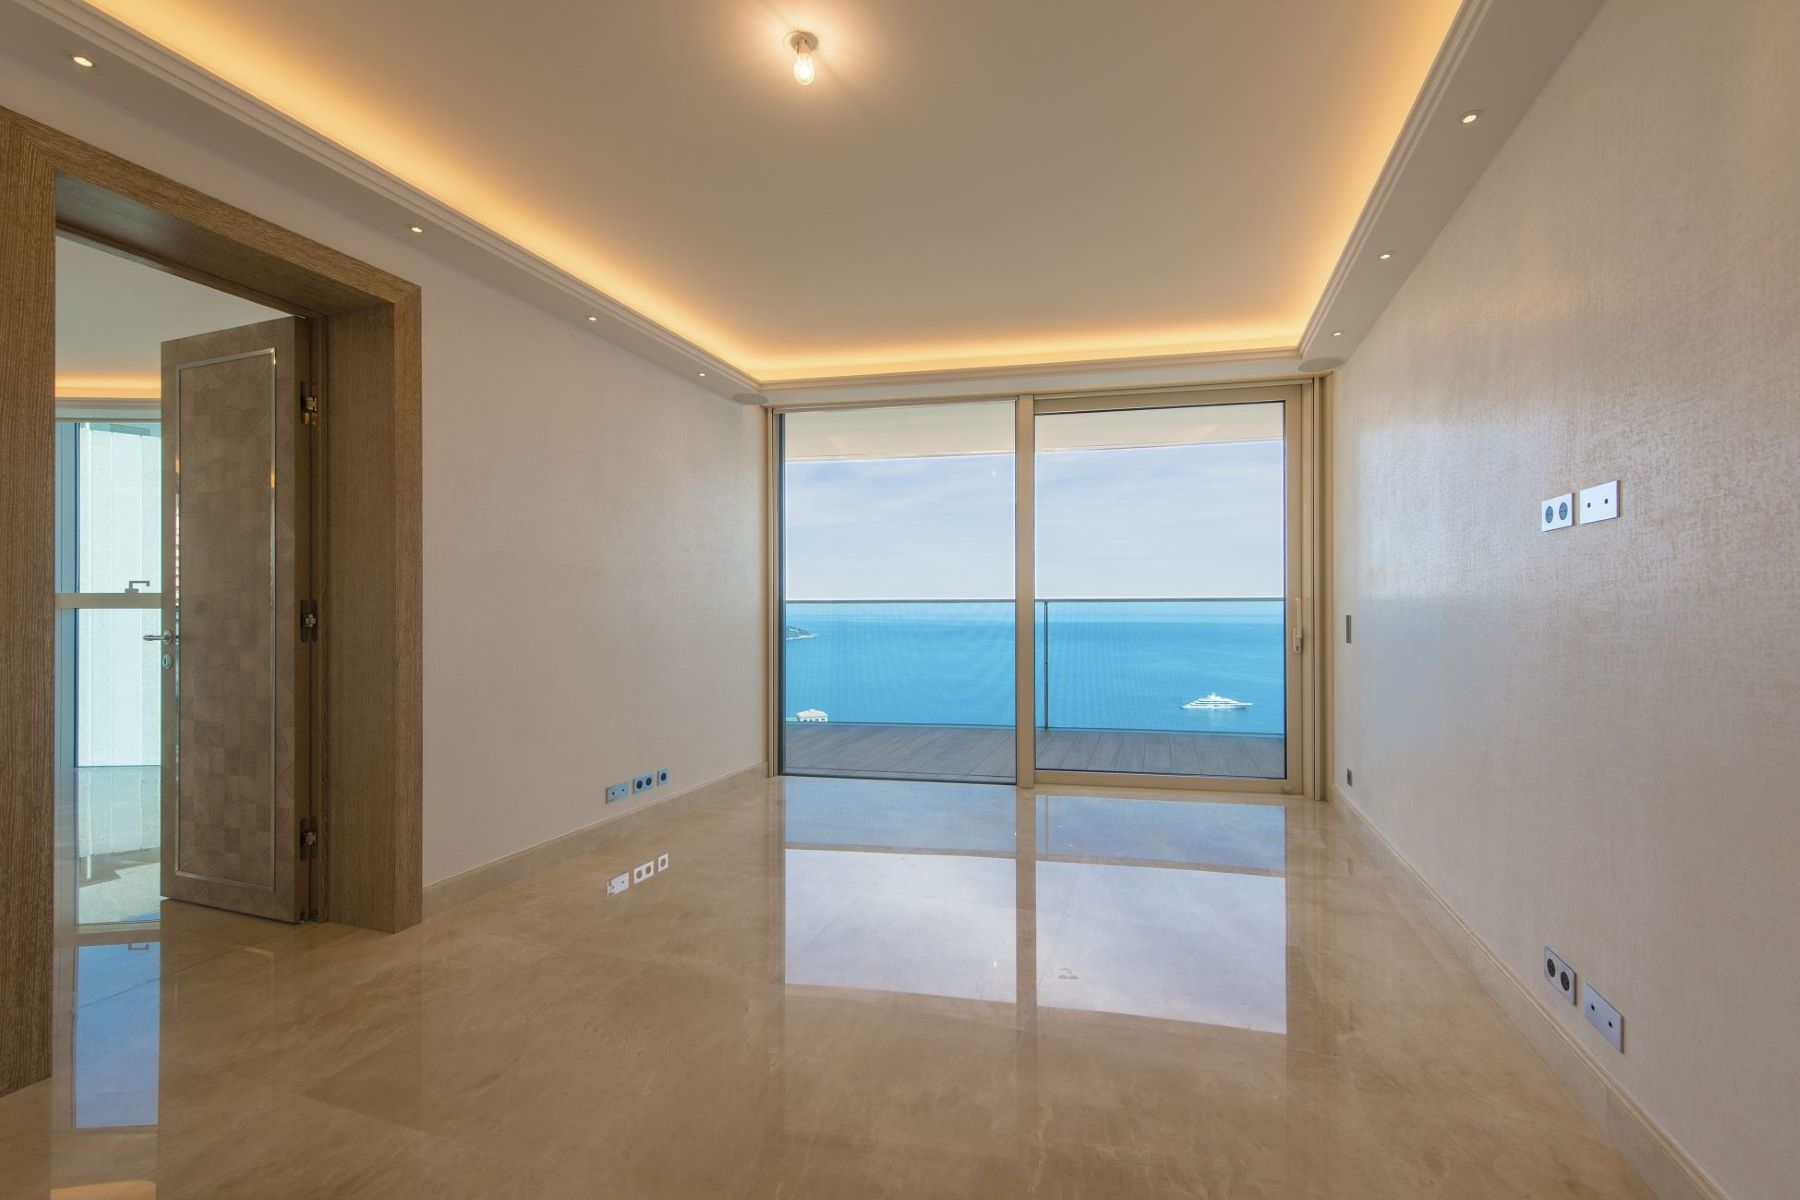 Appartement pour l Vente à Odeon Tower - Superb brand new apartment Tour Odéon 36 Avenue de l'Annonciade Monaco, La Condamine, 98000 Monaco